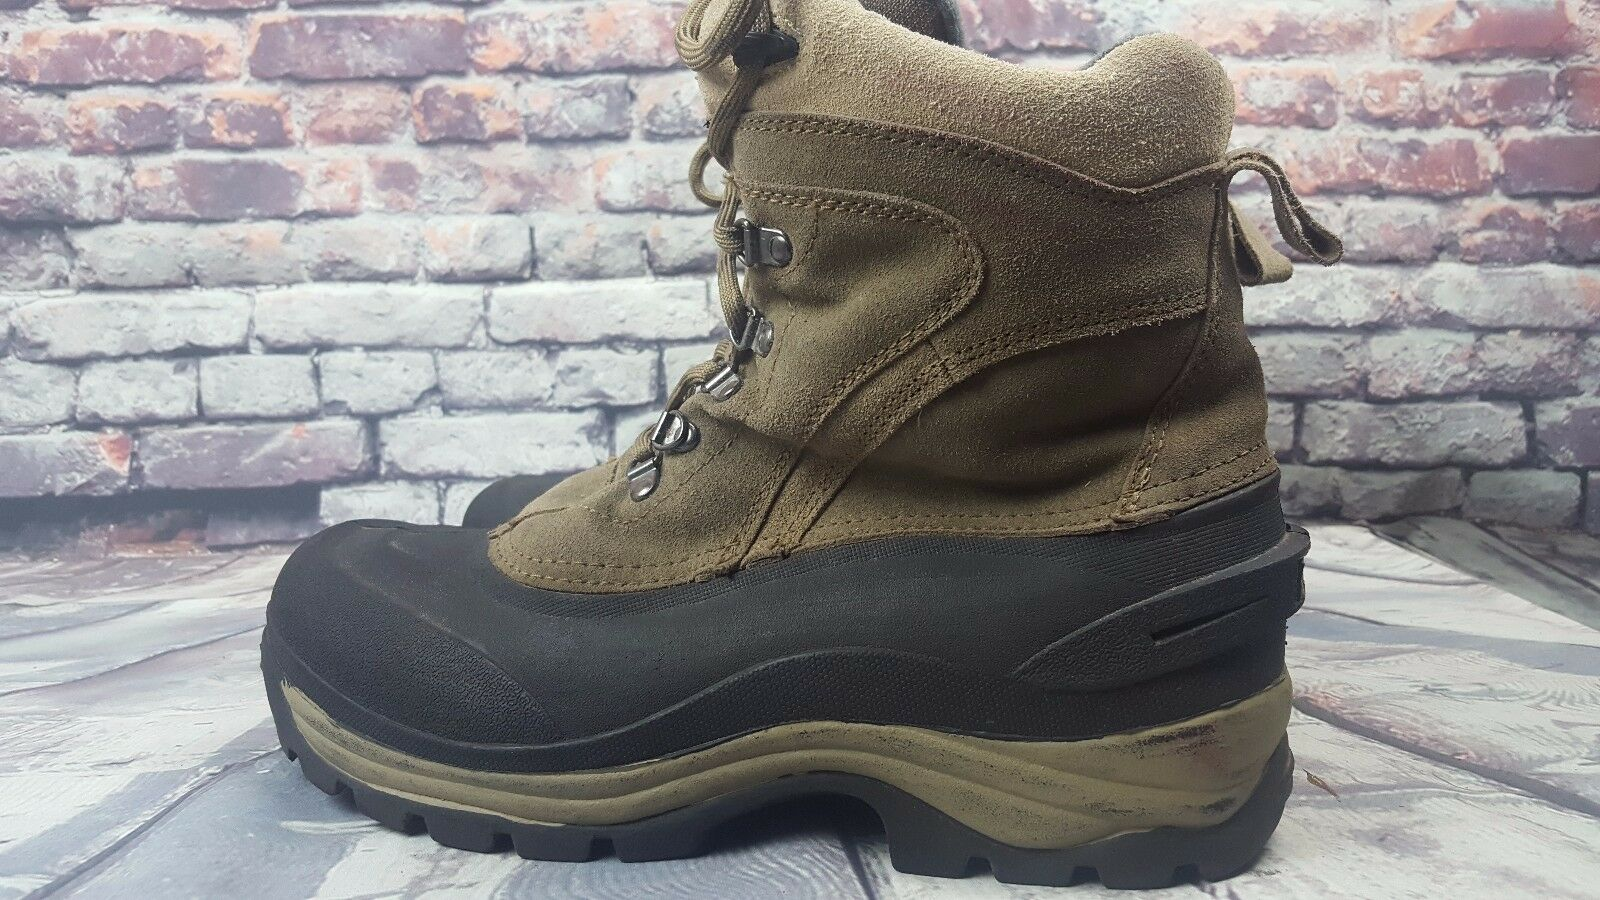 Men's POLAREDGE Warm Thermolite Winter suede Snow Boots Green & B Shoes Size 11